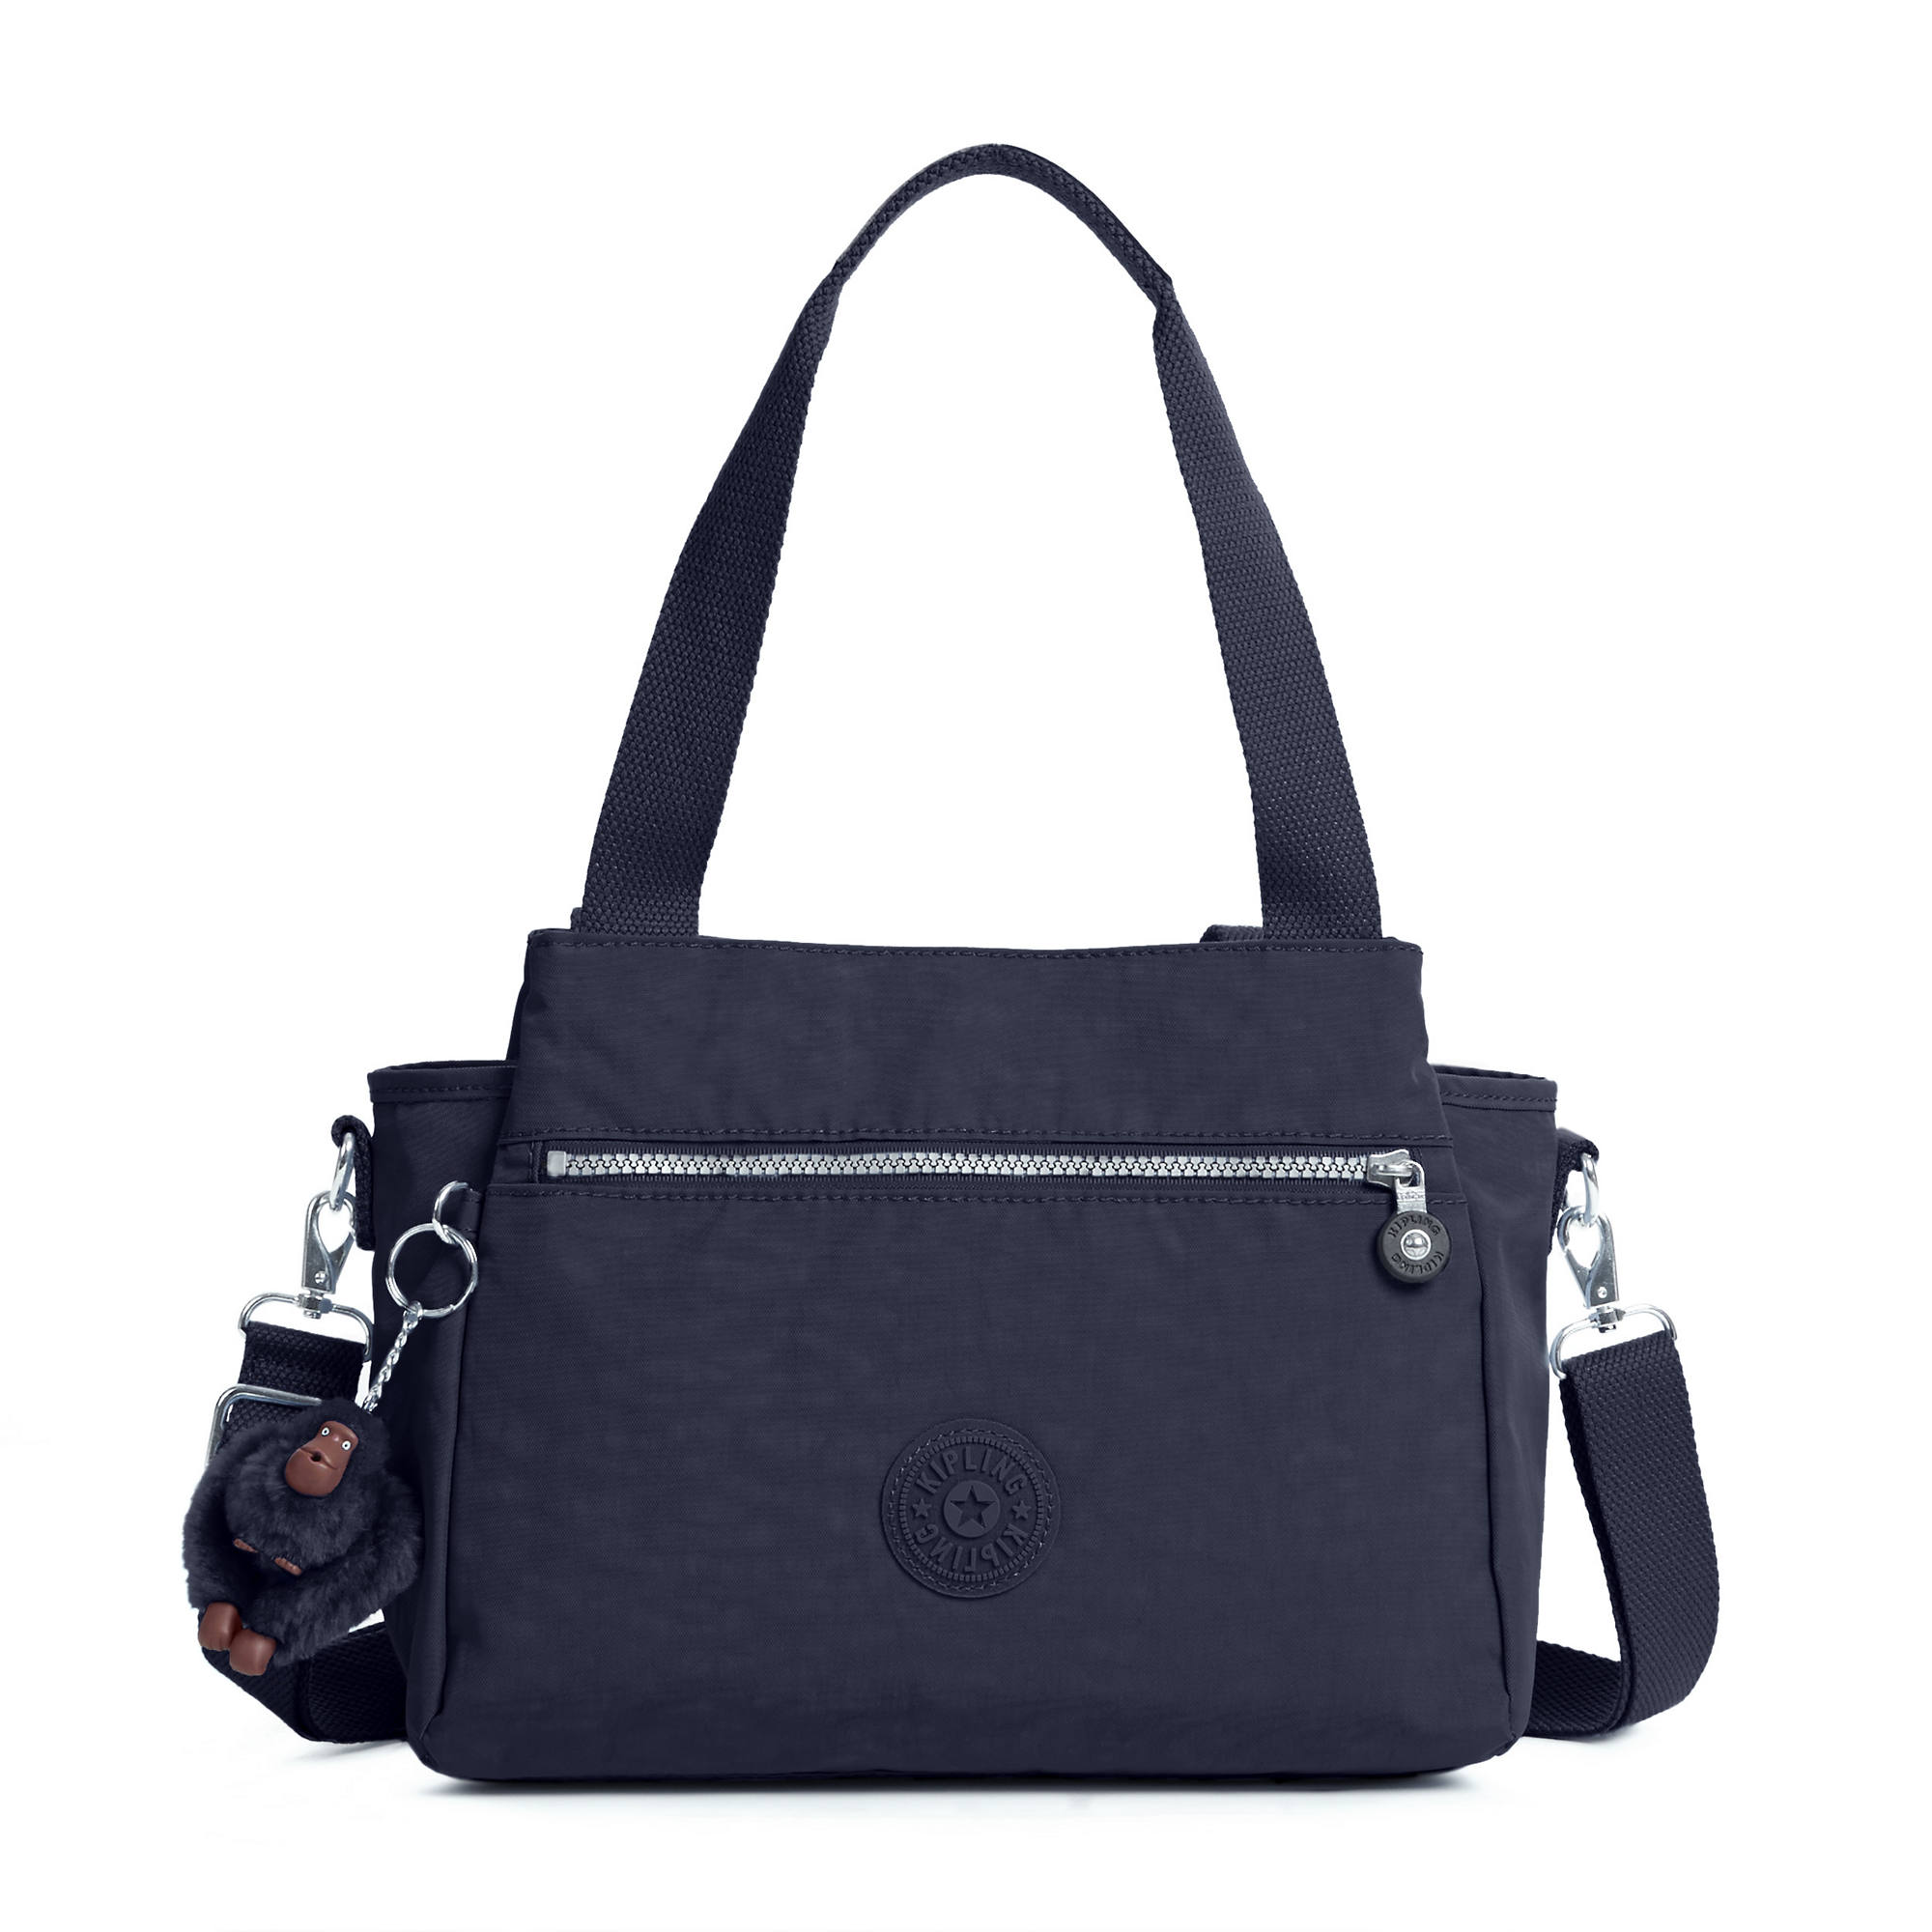 Shop kipling handbags on sale from Kipling and from metrnight.gq, metrnight.gq, Macy's and many more. Find thousands of new high fashion items in one place.